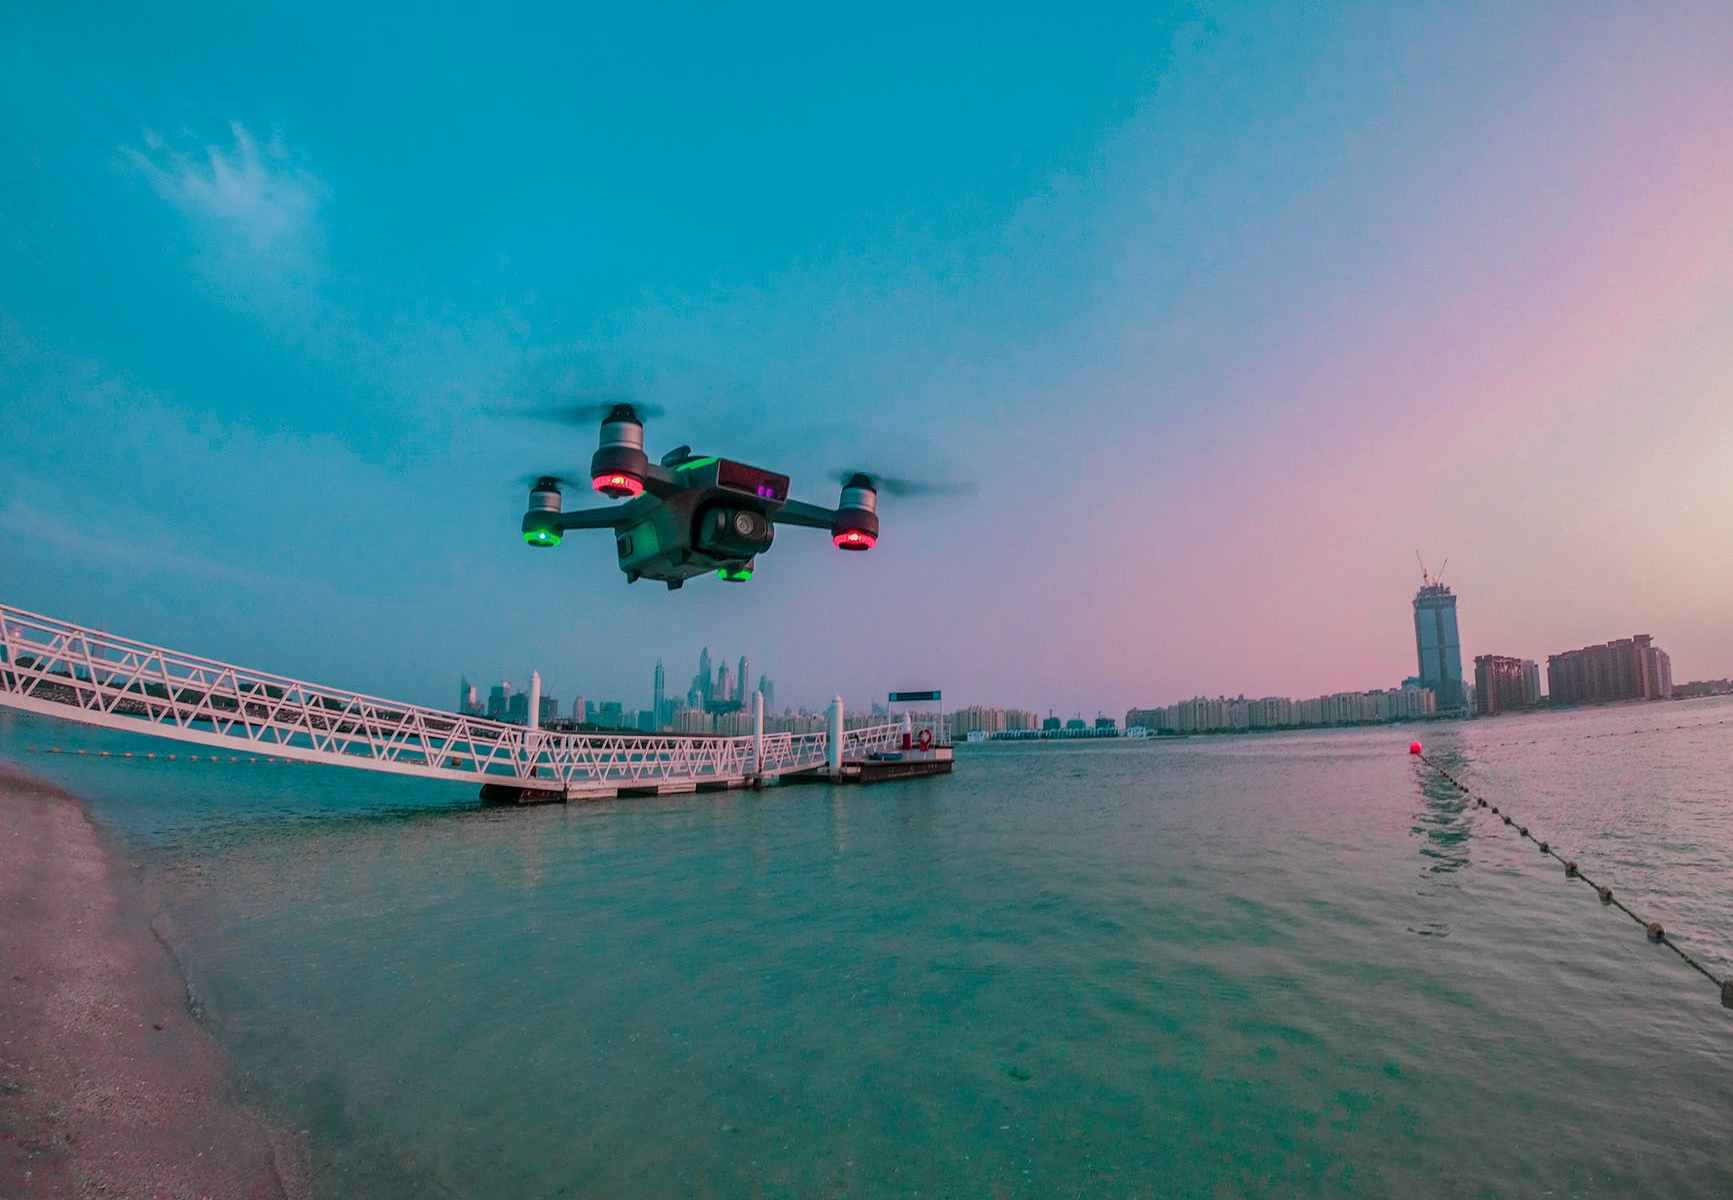 modern drone filming video while flying above city river